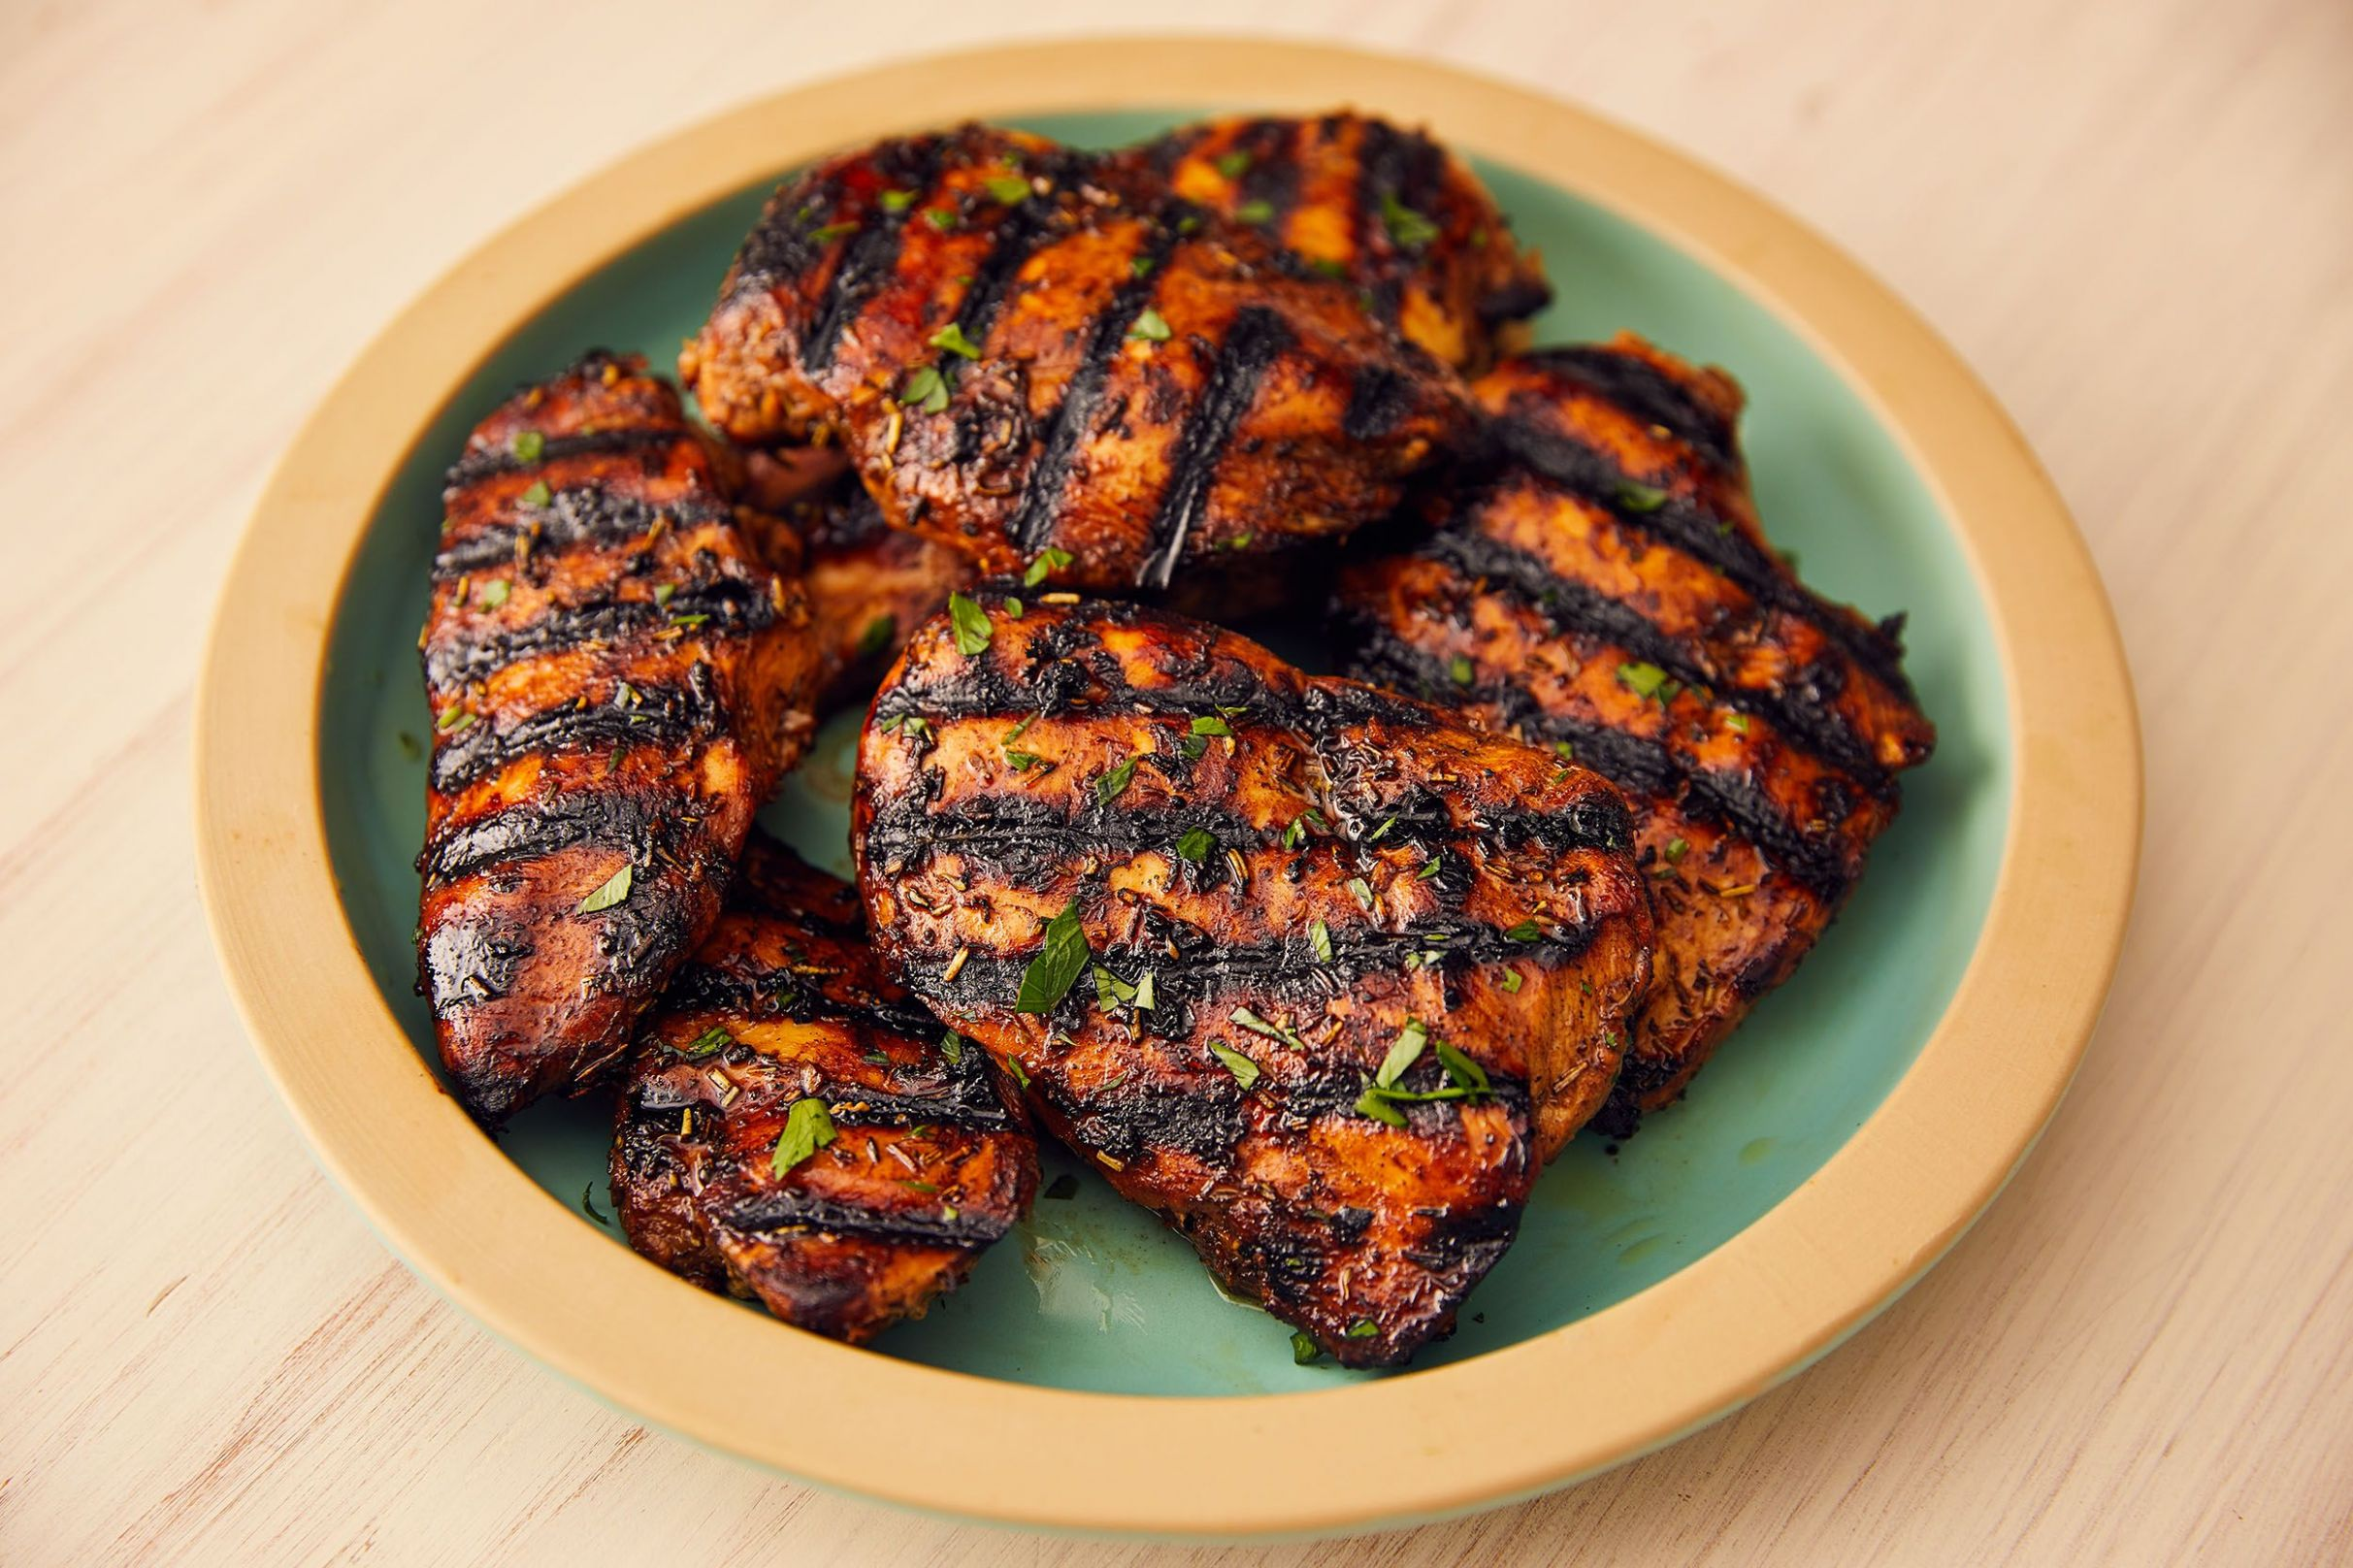 Best Grilled Chicken Breast - Recipes Chicken Breast On Grill